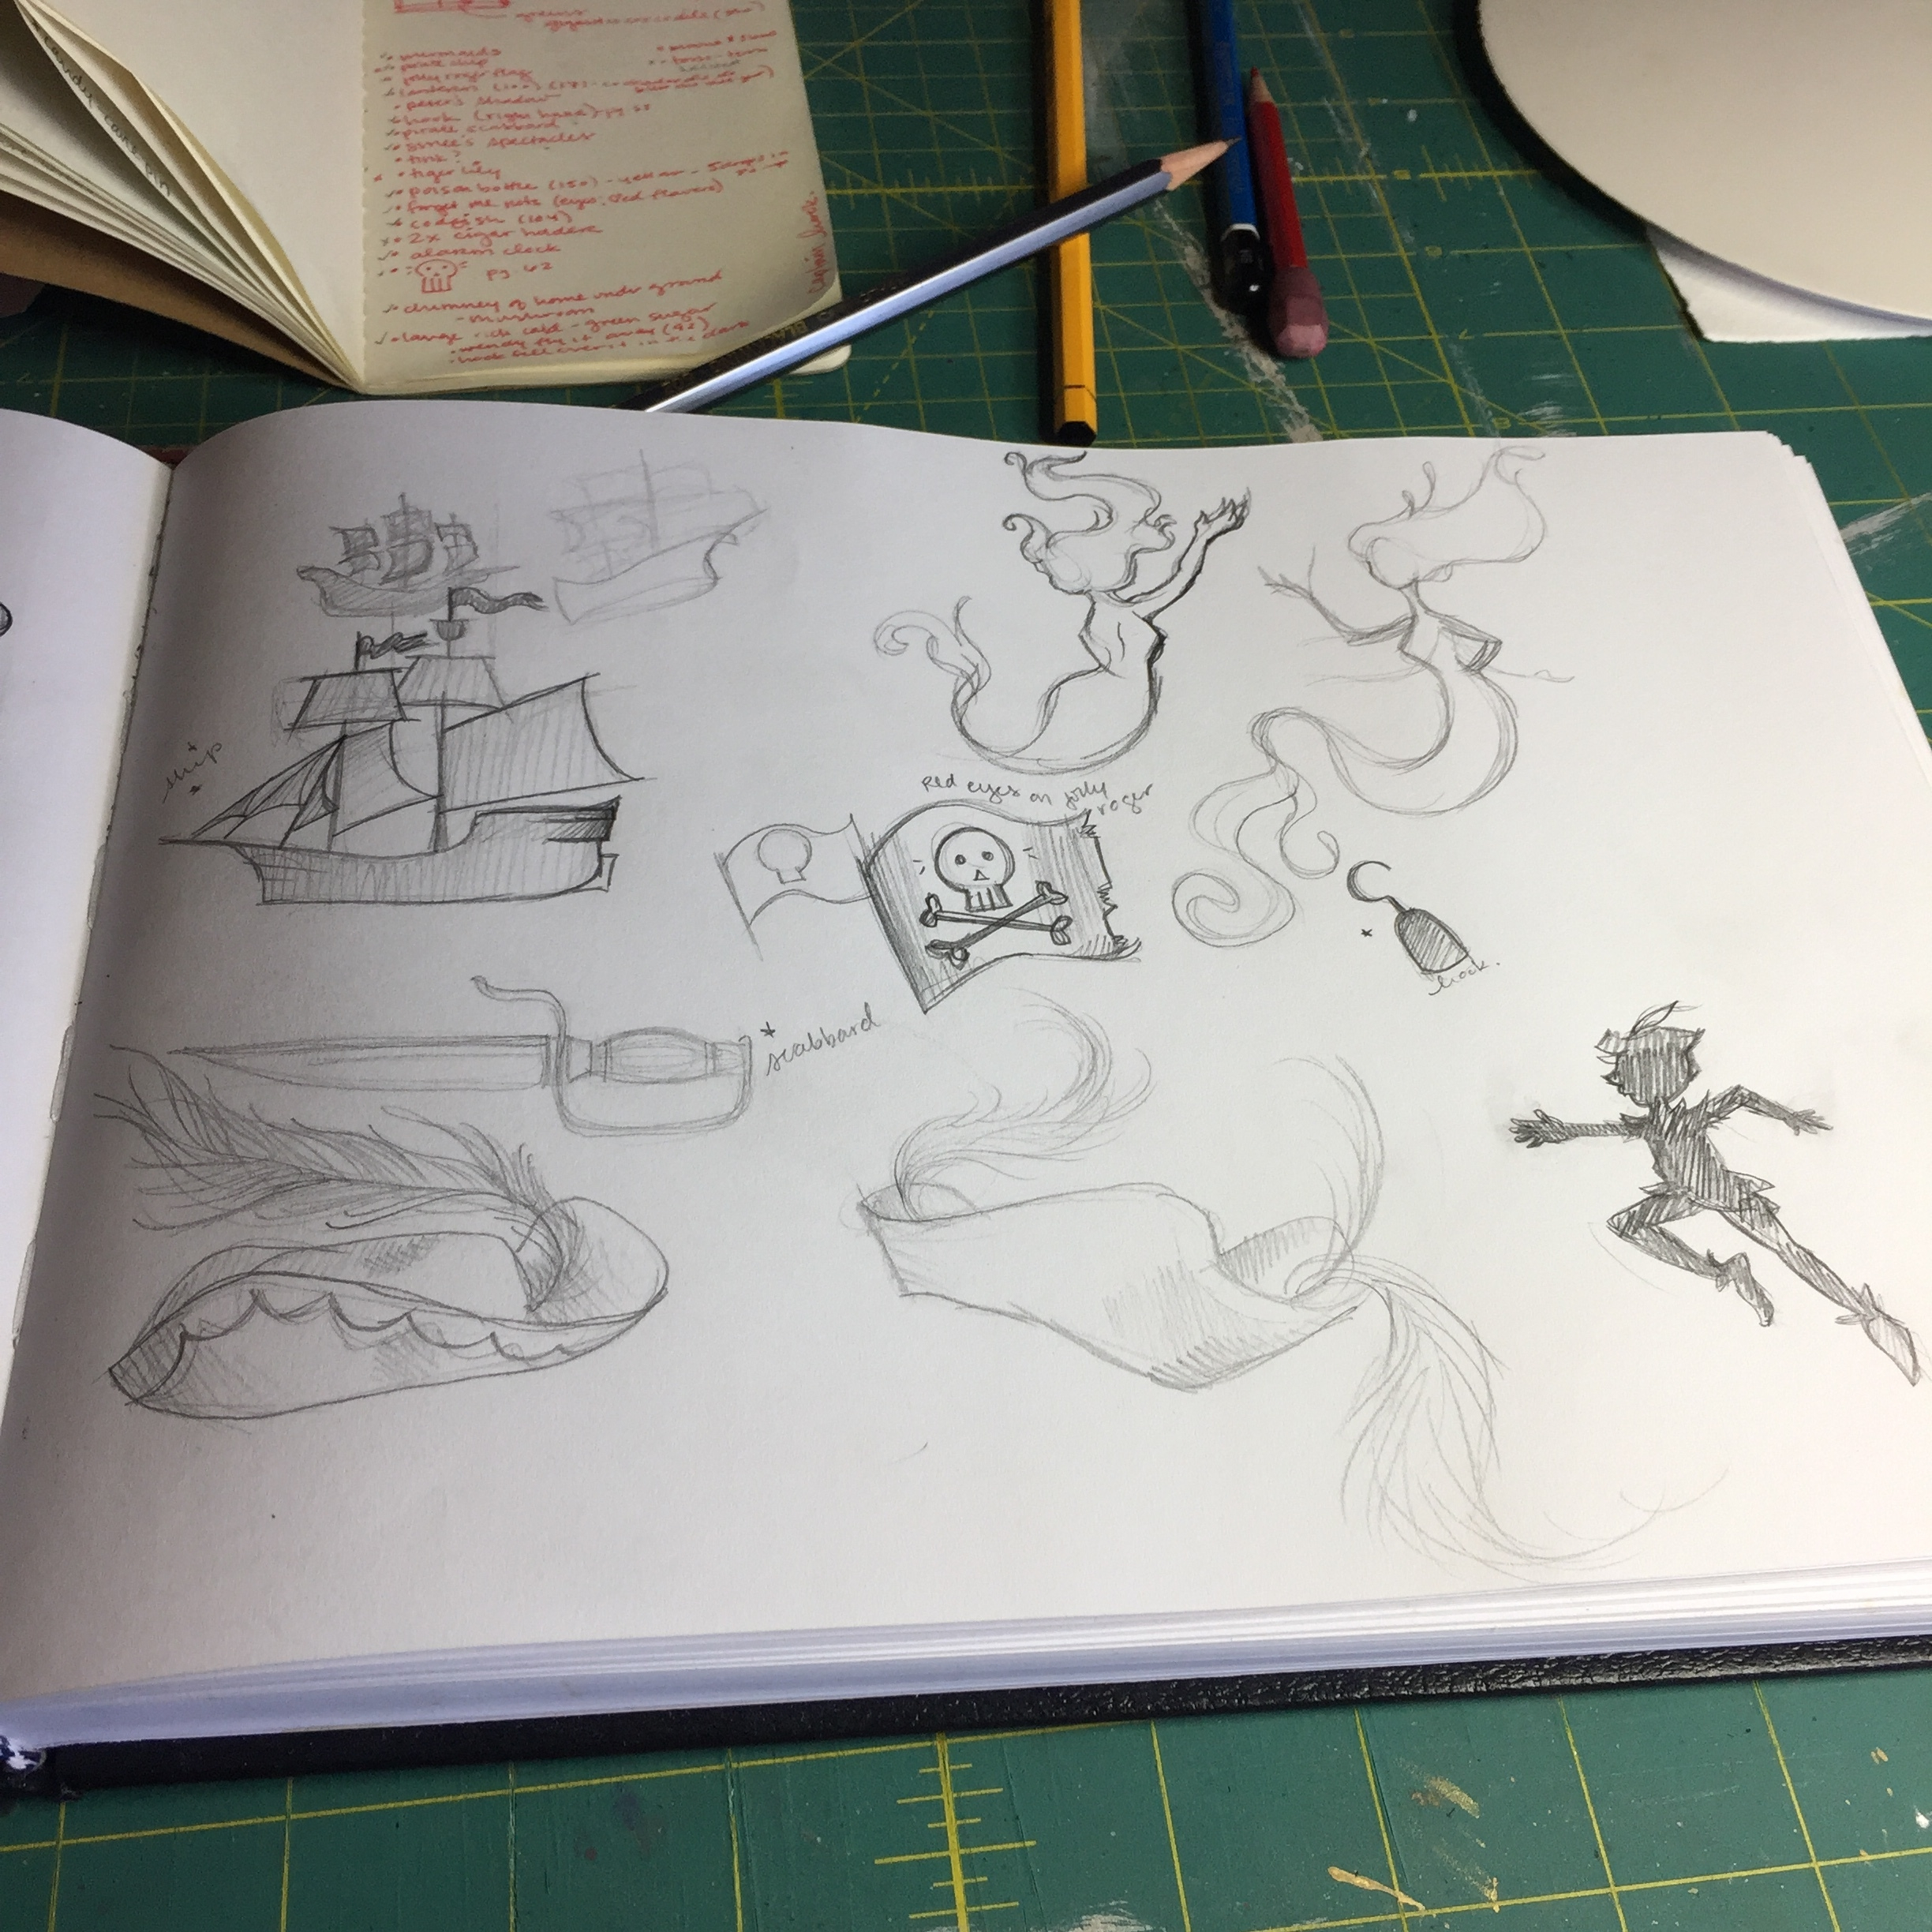 once i've done my original-tome research, i'll usually head to all the adaptations i can find for inspiration and brain-stirring ideas.  so i'll sketch those elements i wrote down in my moleskin that might make it into the final piece.  here, searching for the perfect jolly roger silhouette, peter's shadow, the hat, some mermaids, his hook, and the jolly roger flag!